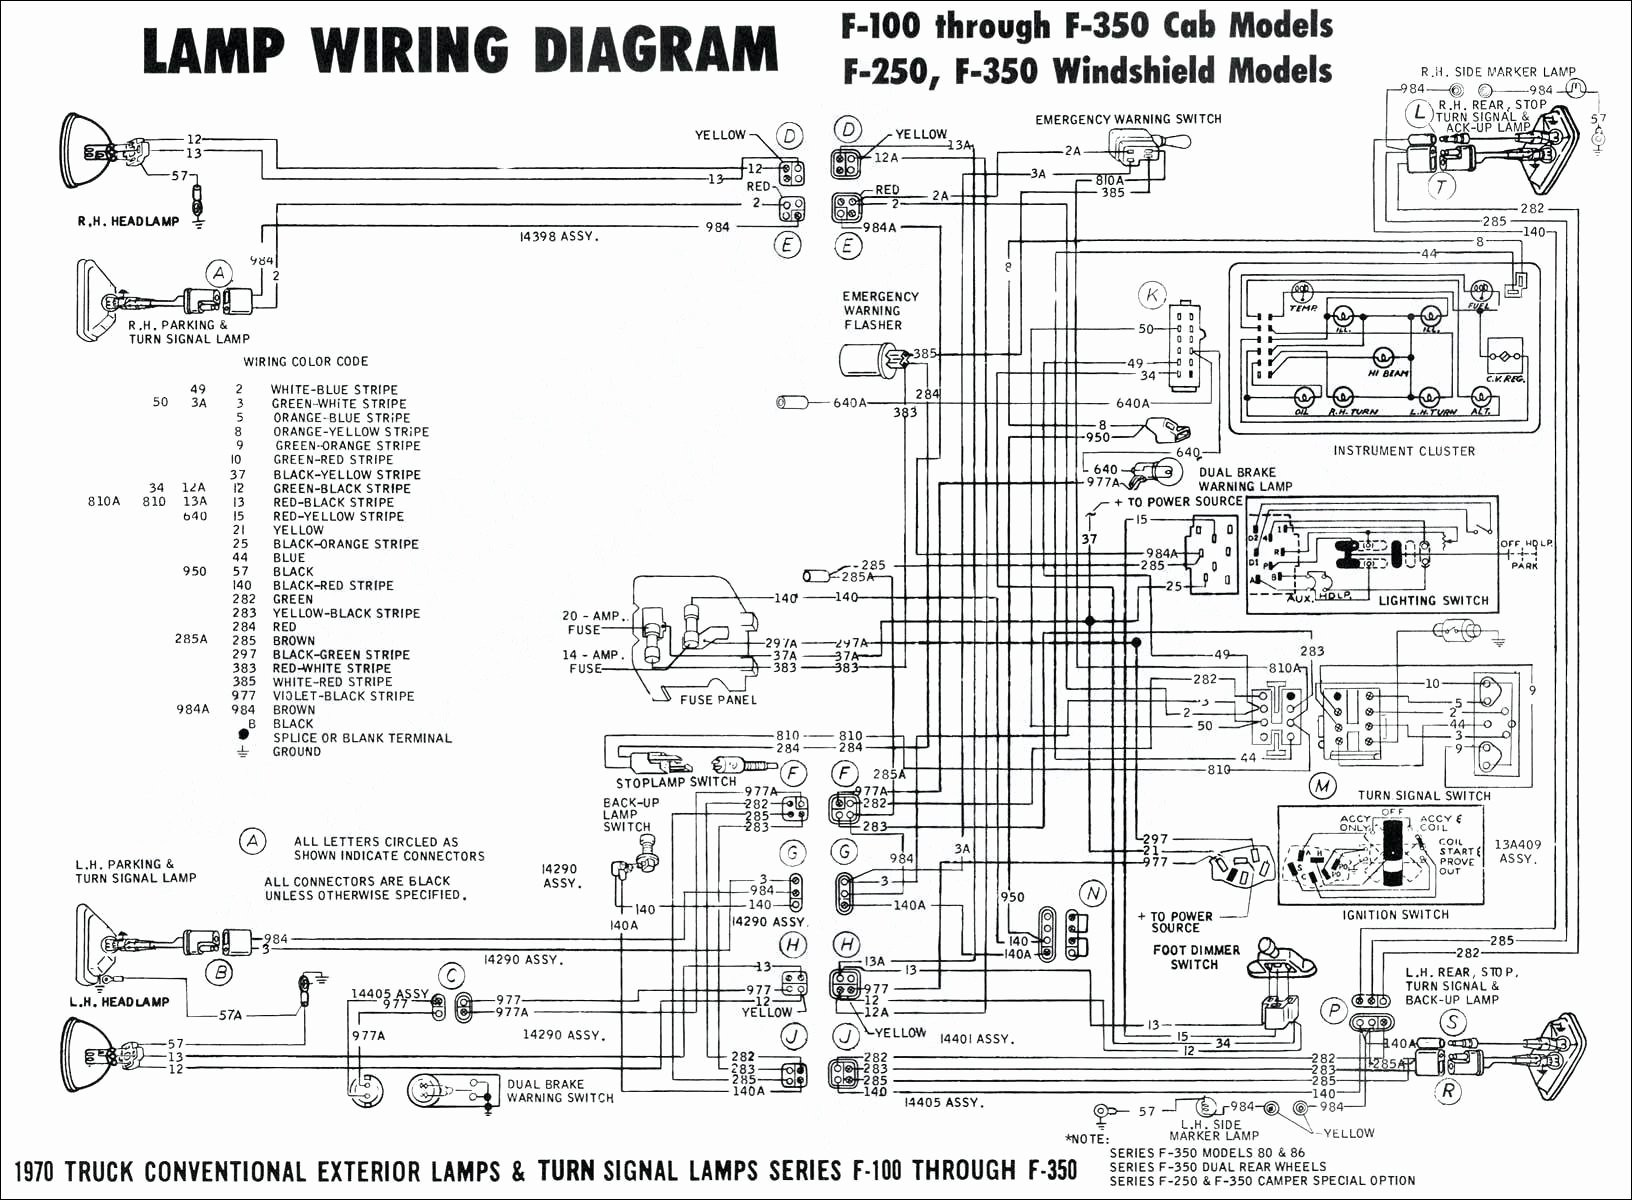 Whirlpool Washer Wiring Diagram Earthwise Pressure Washer Wiring Diagrams Worksheet and Wiring Of Whirlpool Washer Wiring Diagram